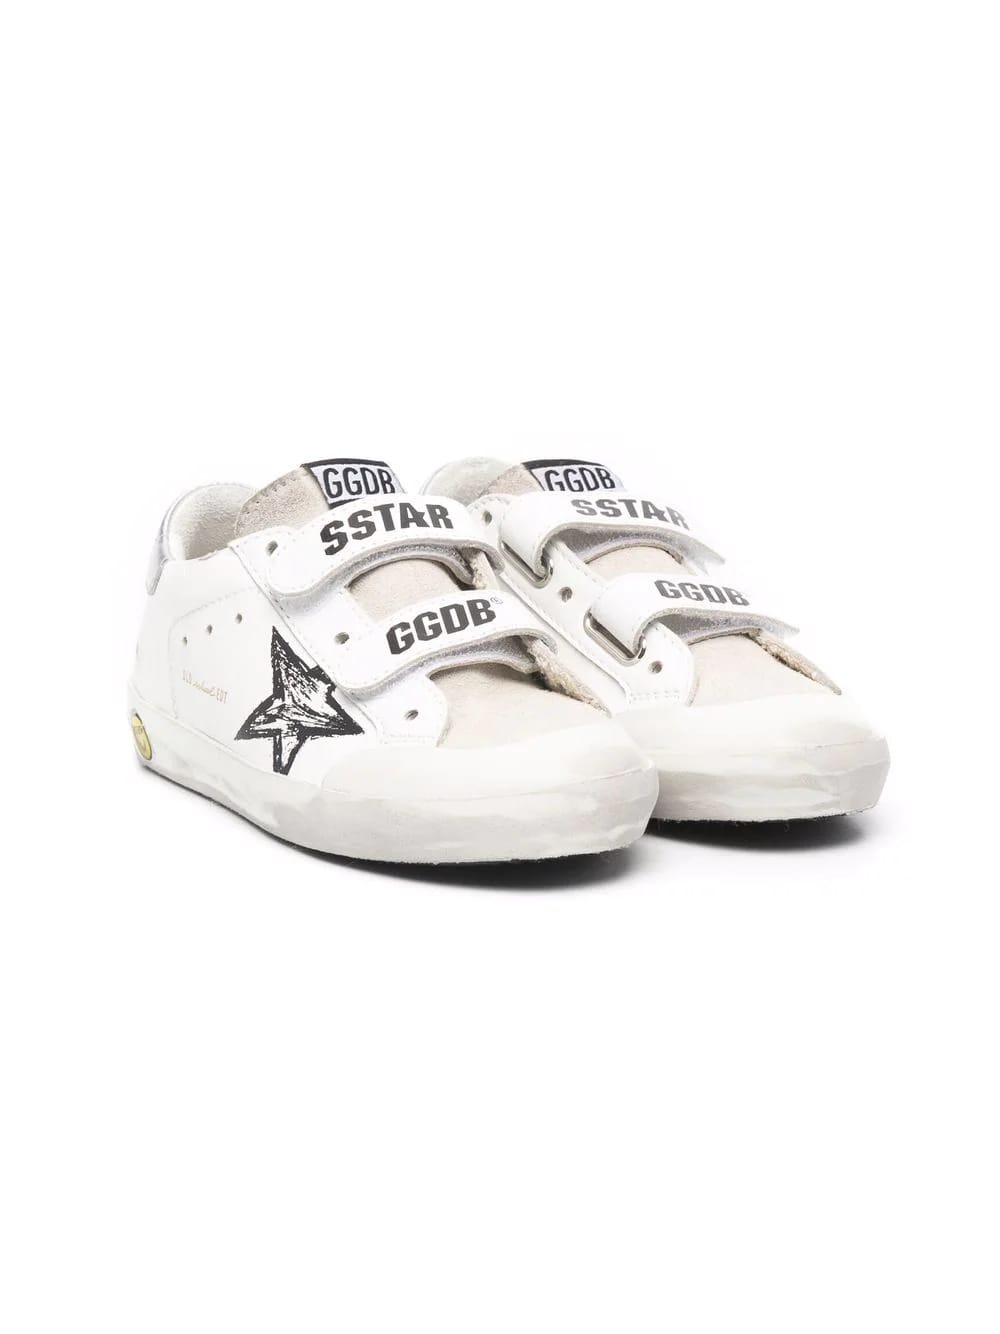 Golden Goose Kids White And Silver Metallic Super-star Sneakers With Velcro Closure